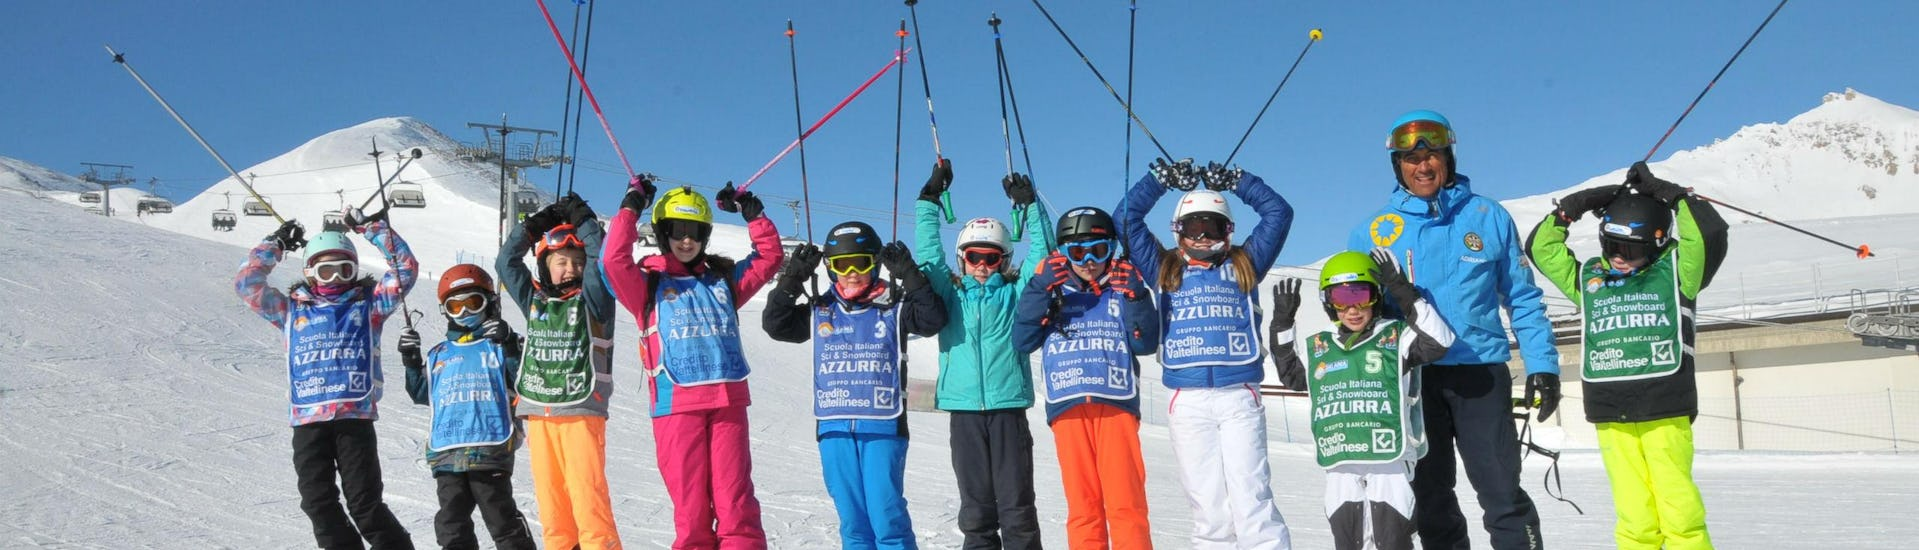 A group of children is enjoying their Kids Ski Lessons (4-14 y.) - Full Day with the ski school Scuola di Sci Azzurra Livigno on the ski slopes of Livigno.